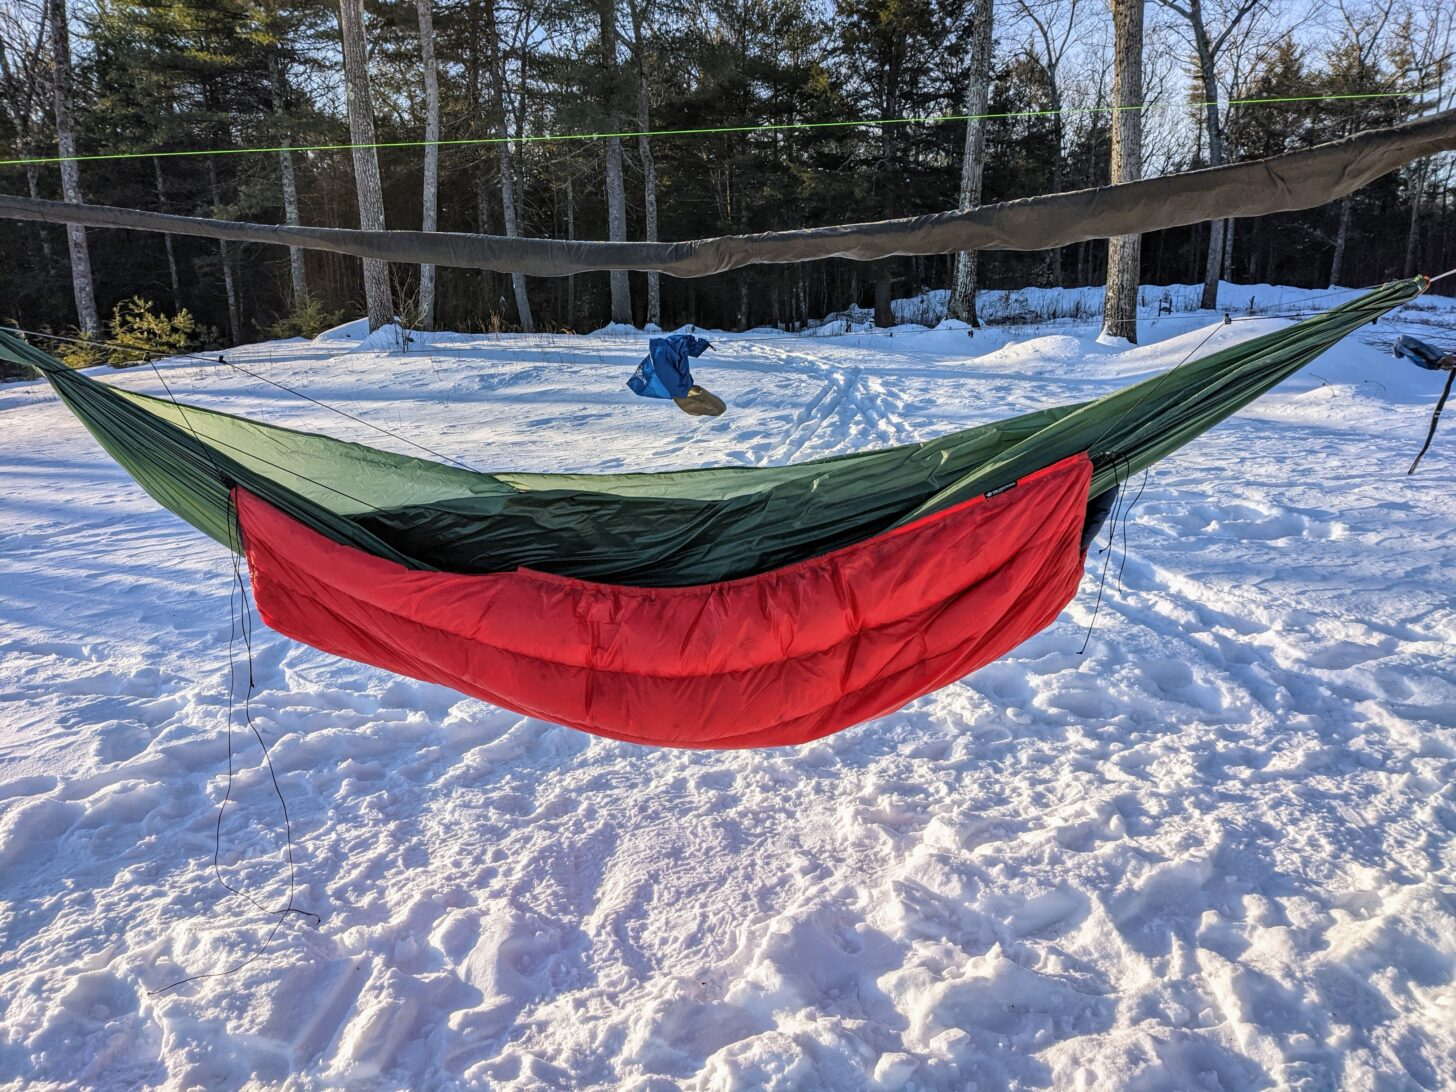 a red underquilt wraps a green hammock in a snowy forest